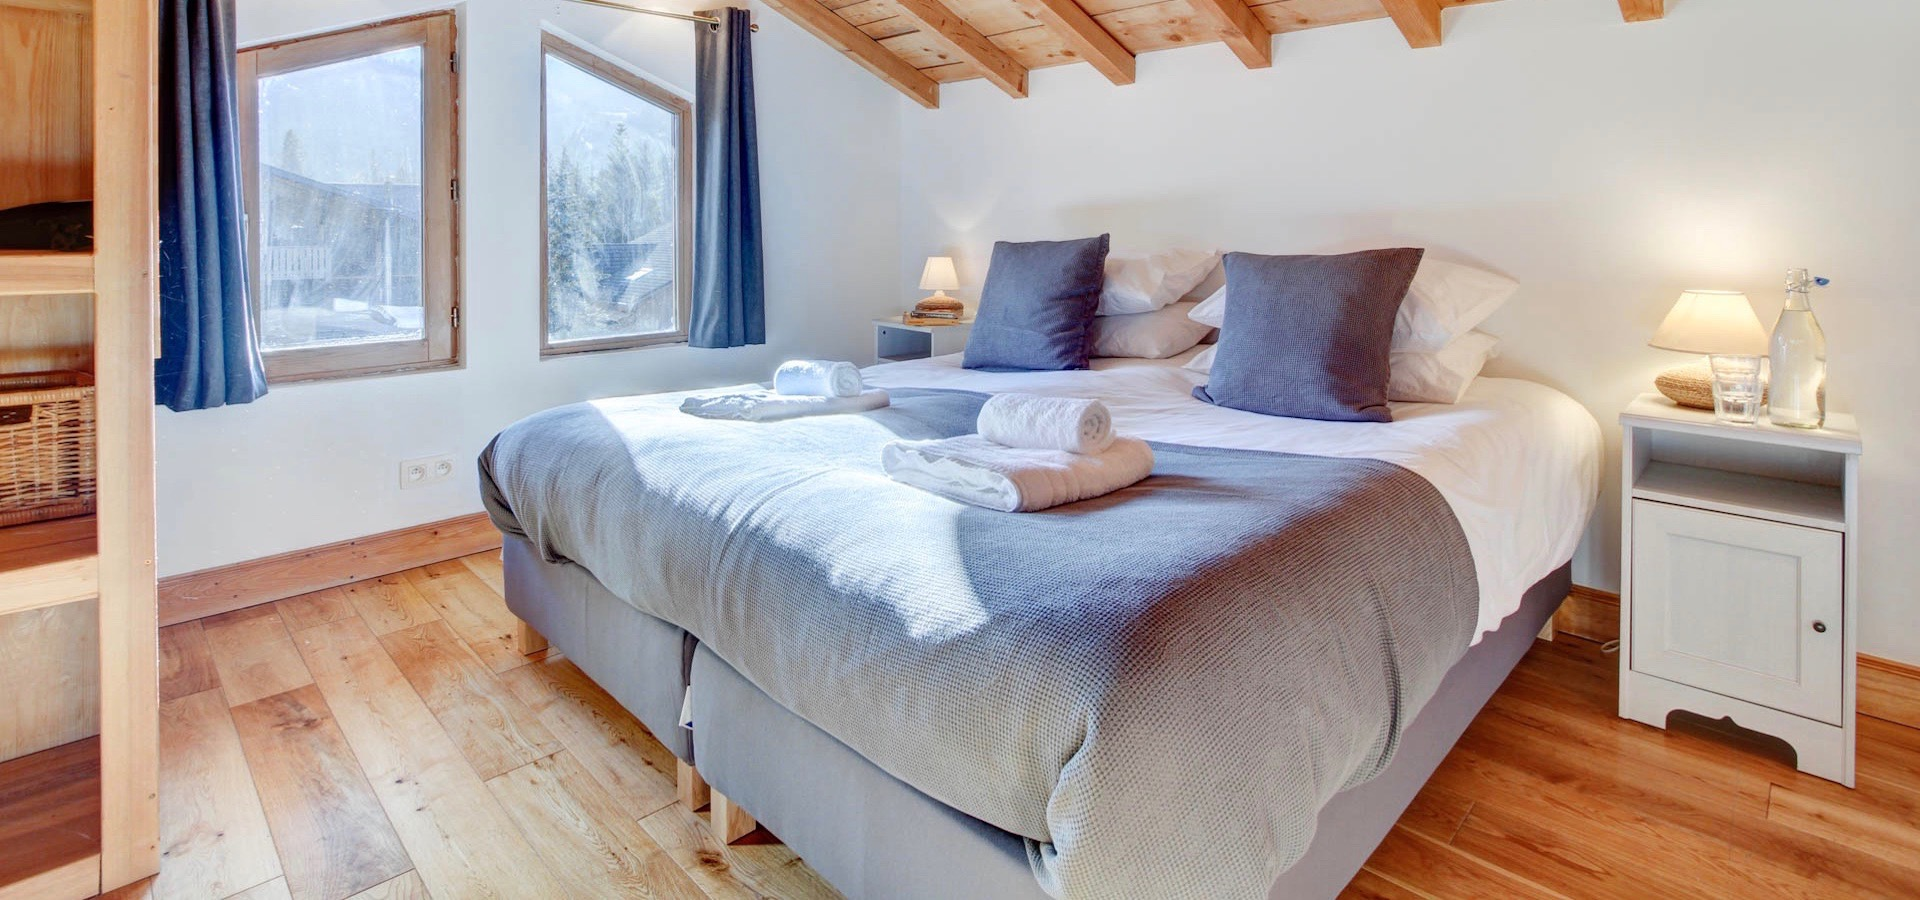 Chalet Mautalent Morillon Bedroom